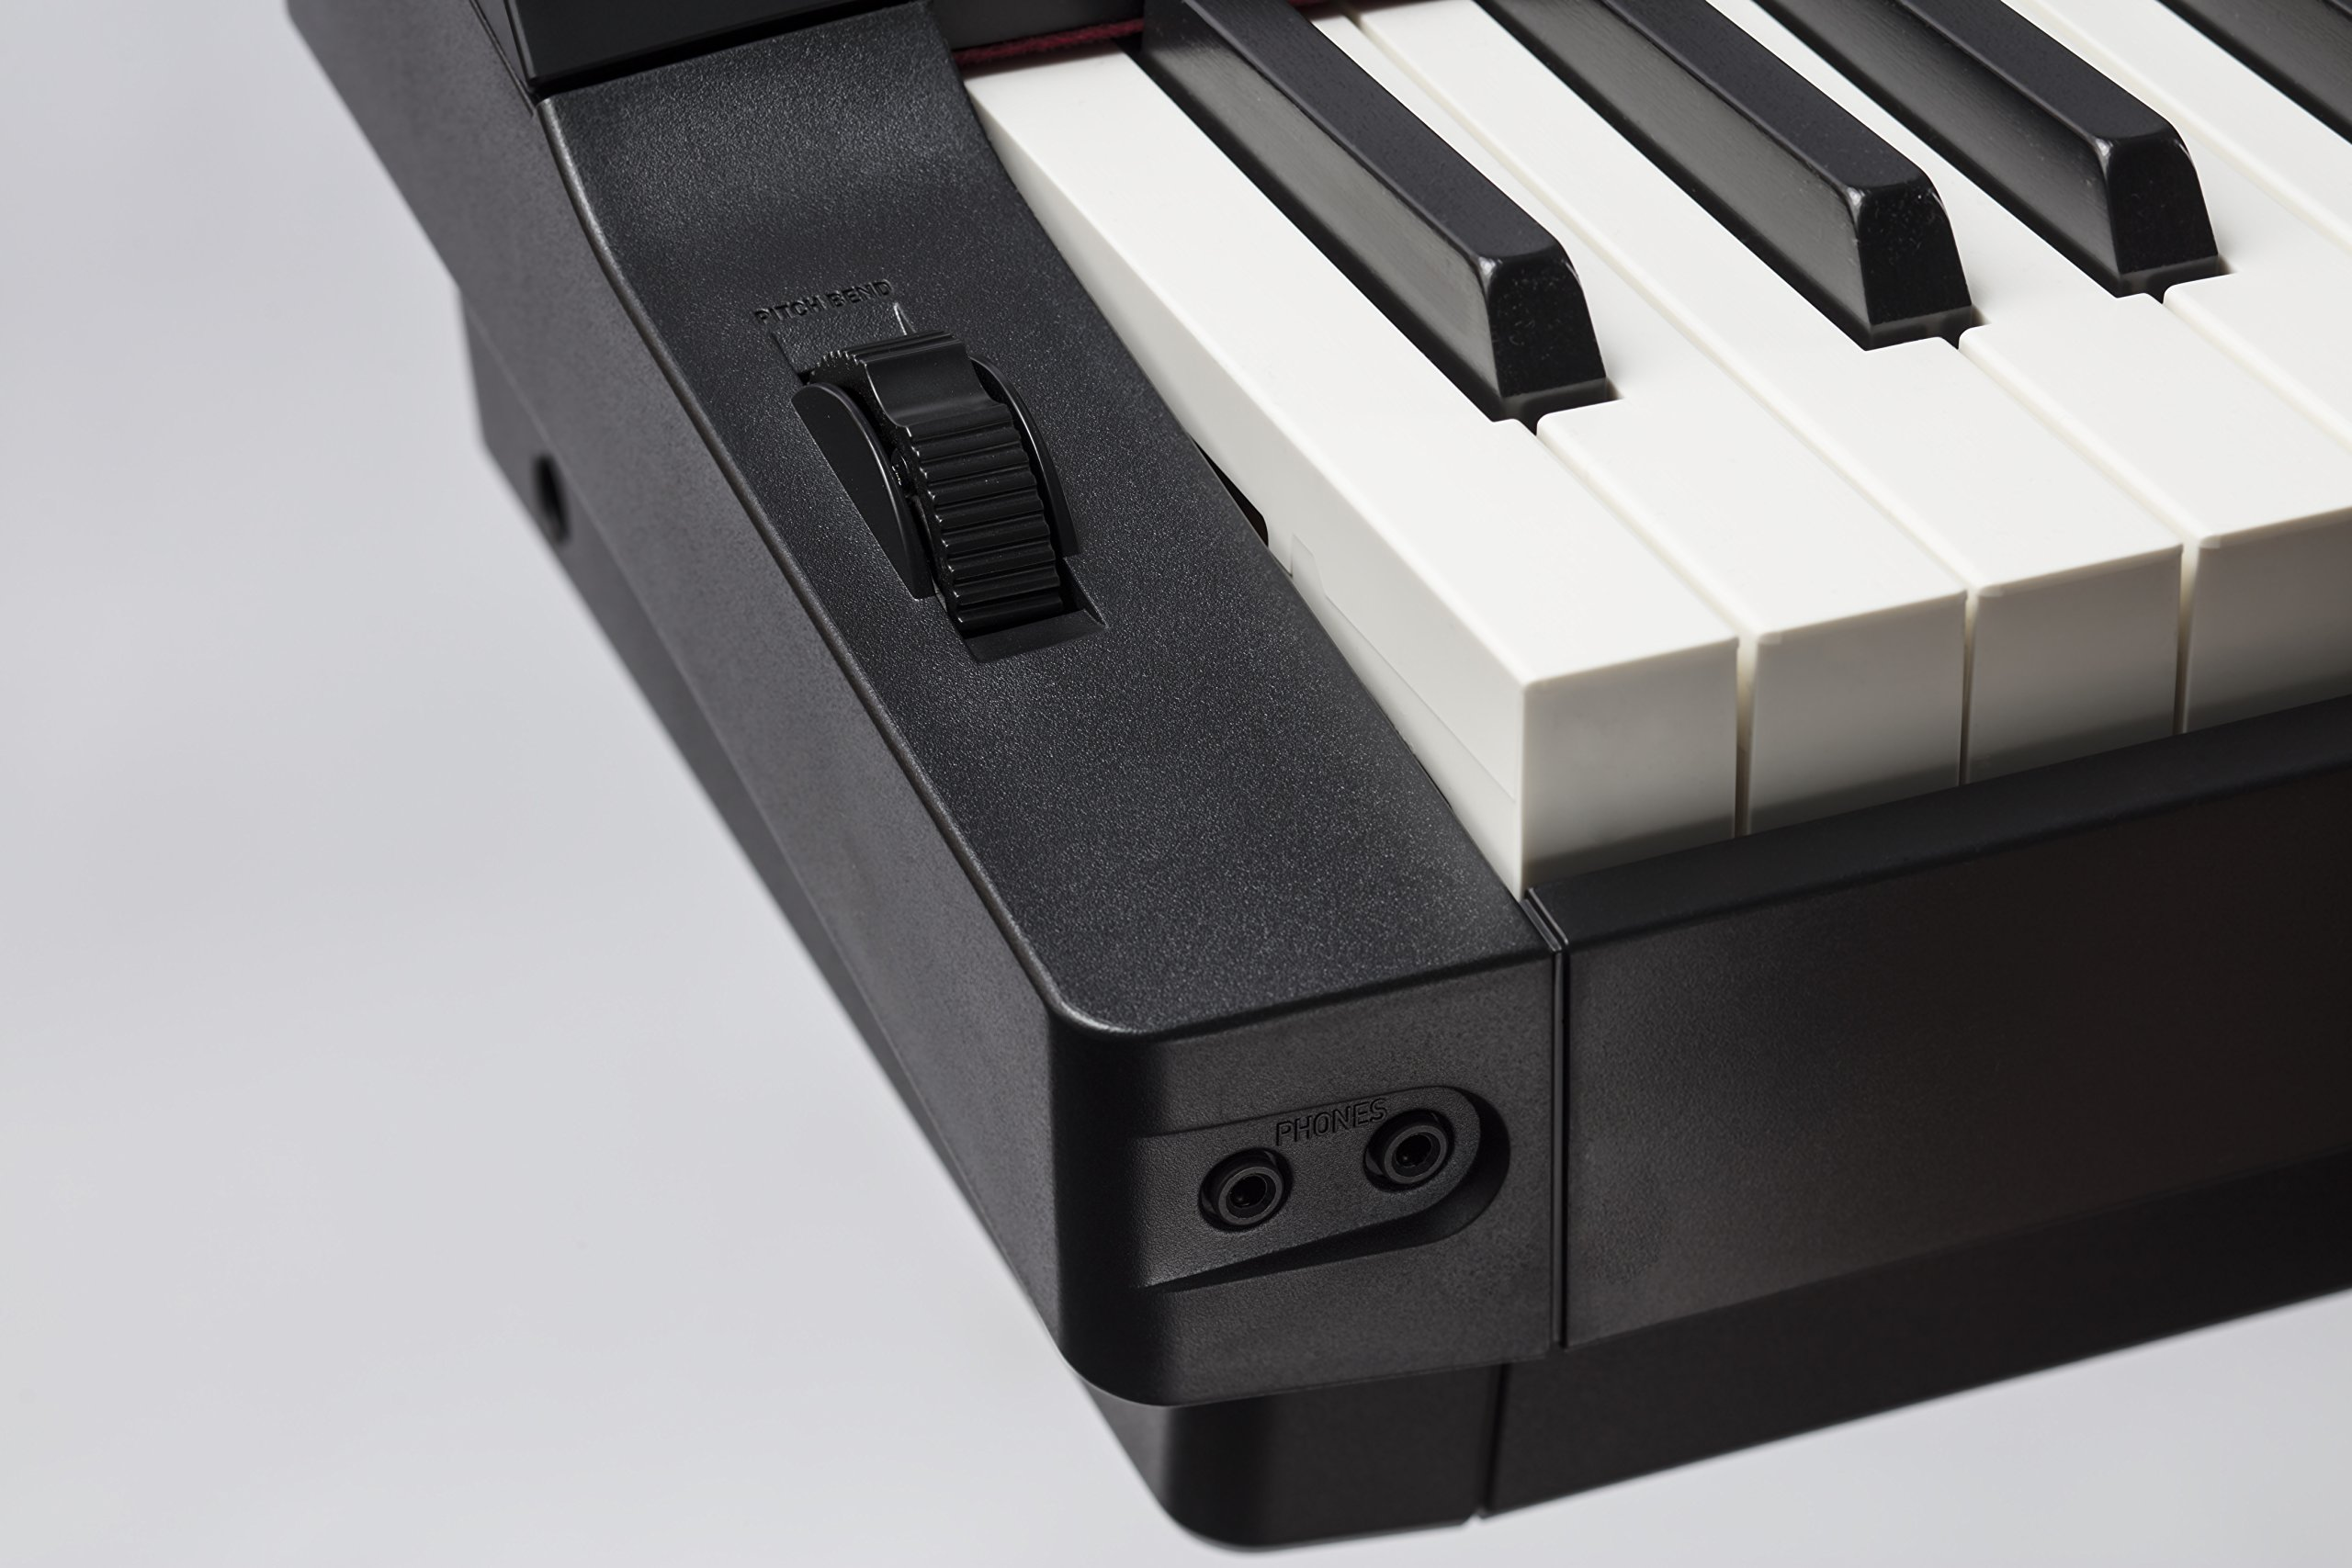 Who Should Play The Casio Px 360?